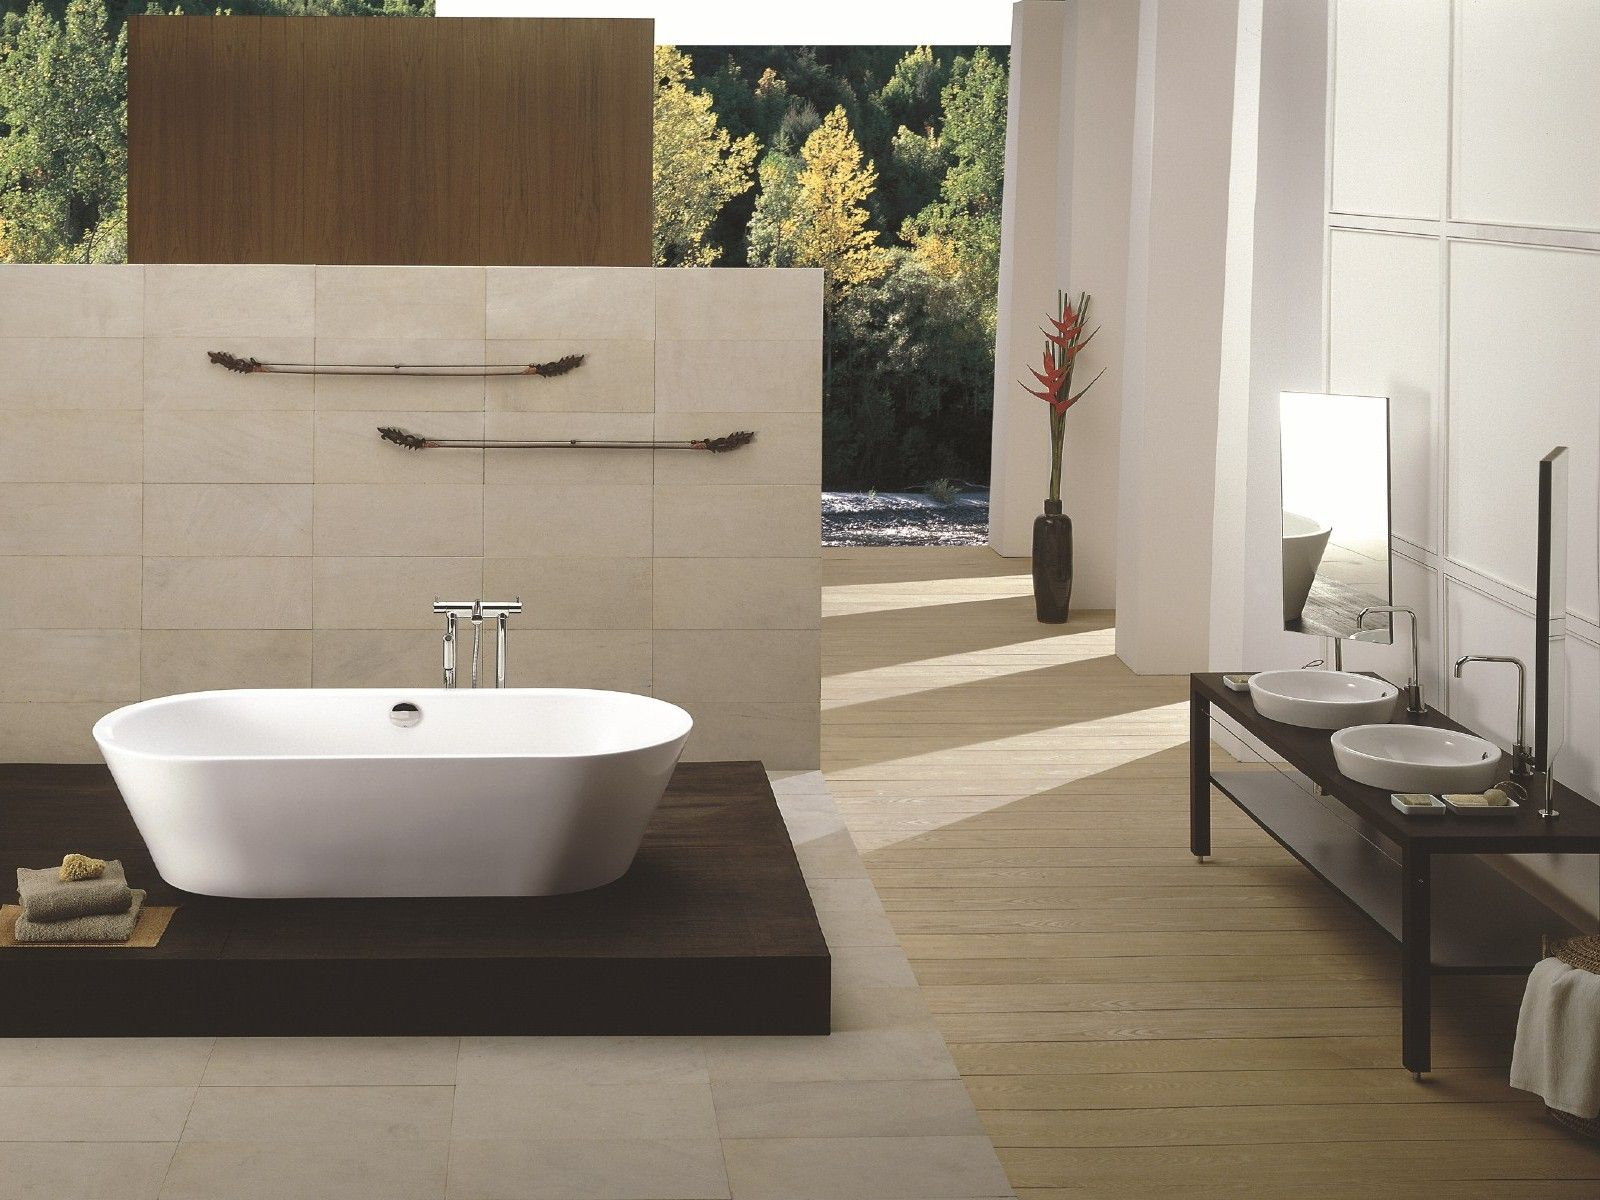 Sleek Bathroom Laminate Flooring With White Wall And Bathtub Furniture